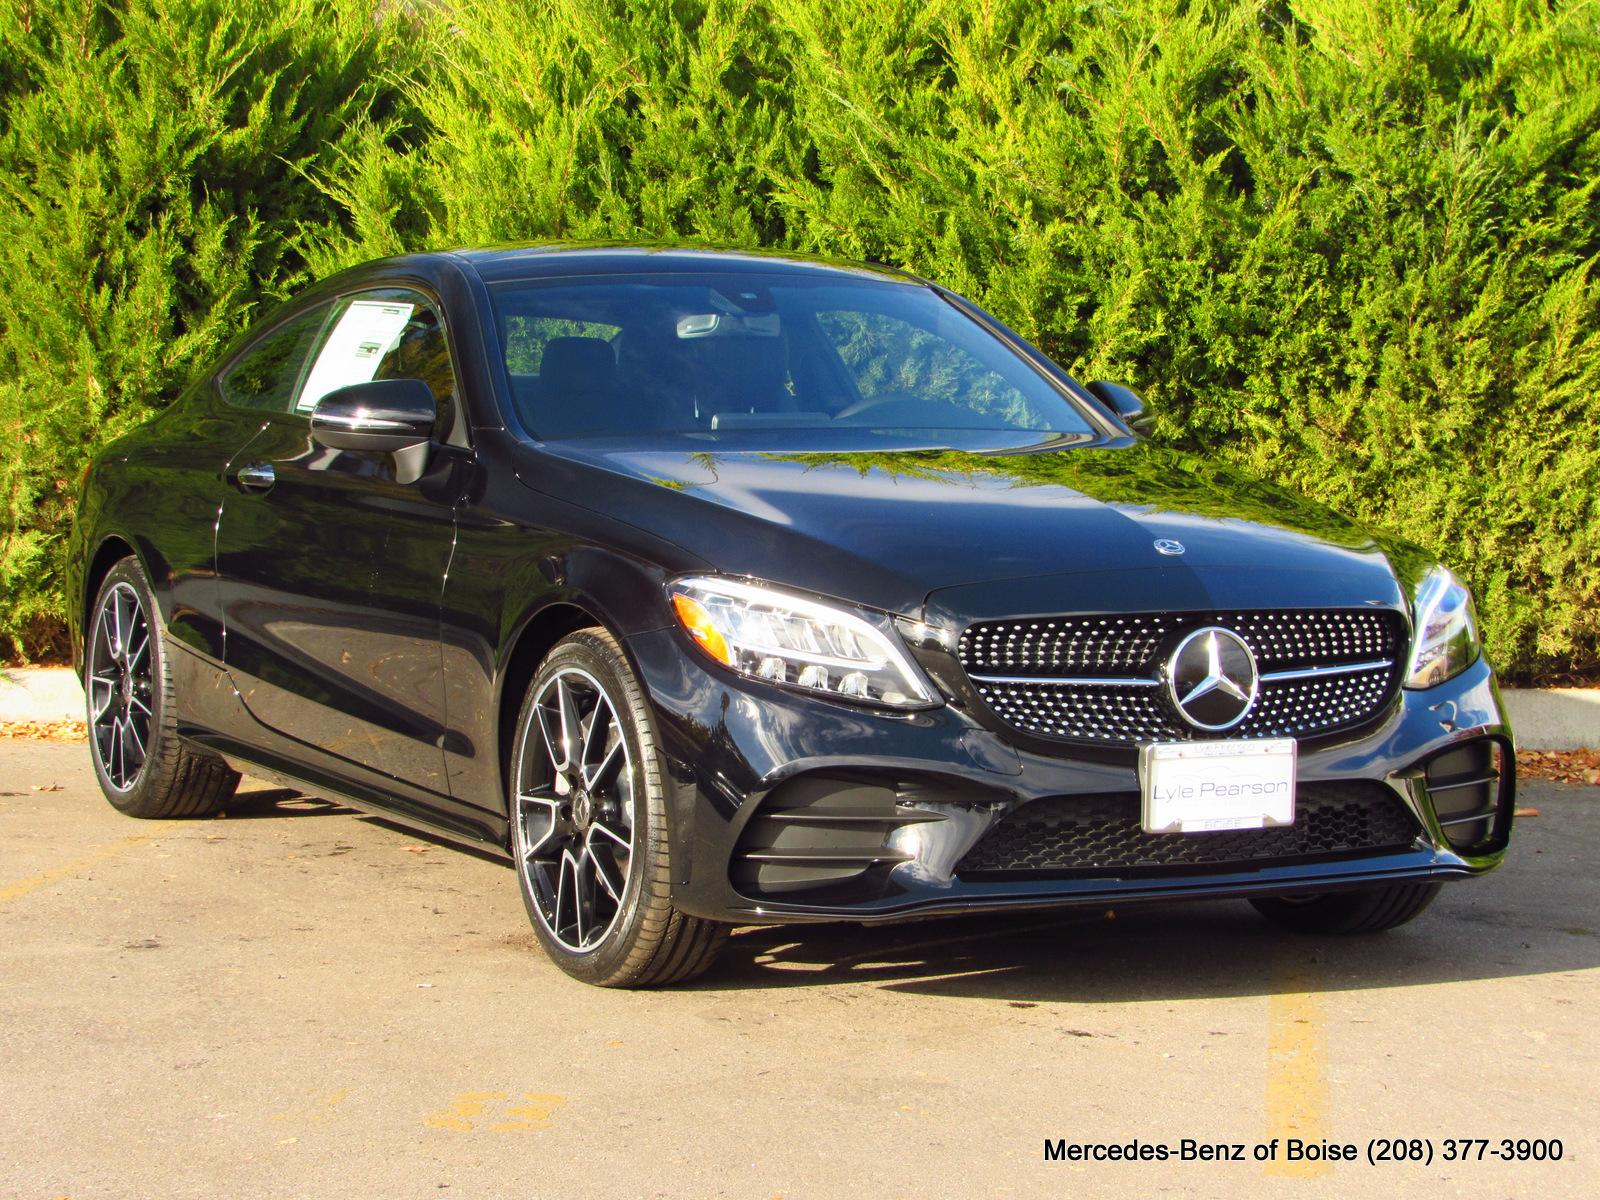 New 2019 Mercedes Benz C Class C 300 4MATIC Coupe Coupe in Boise